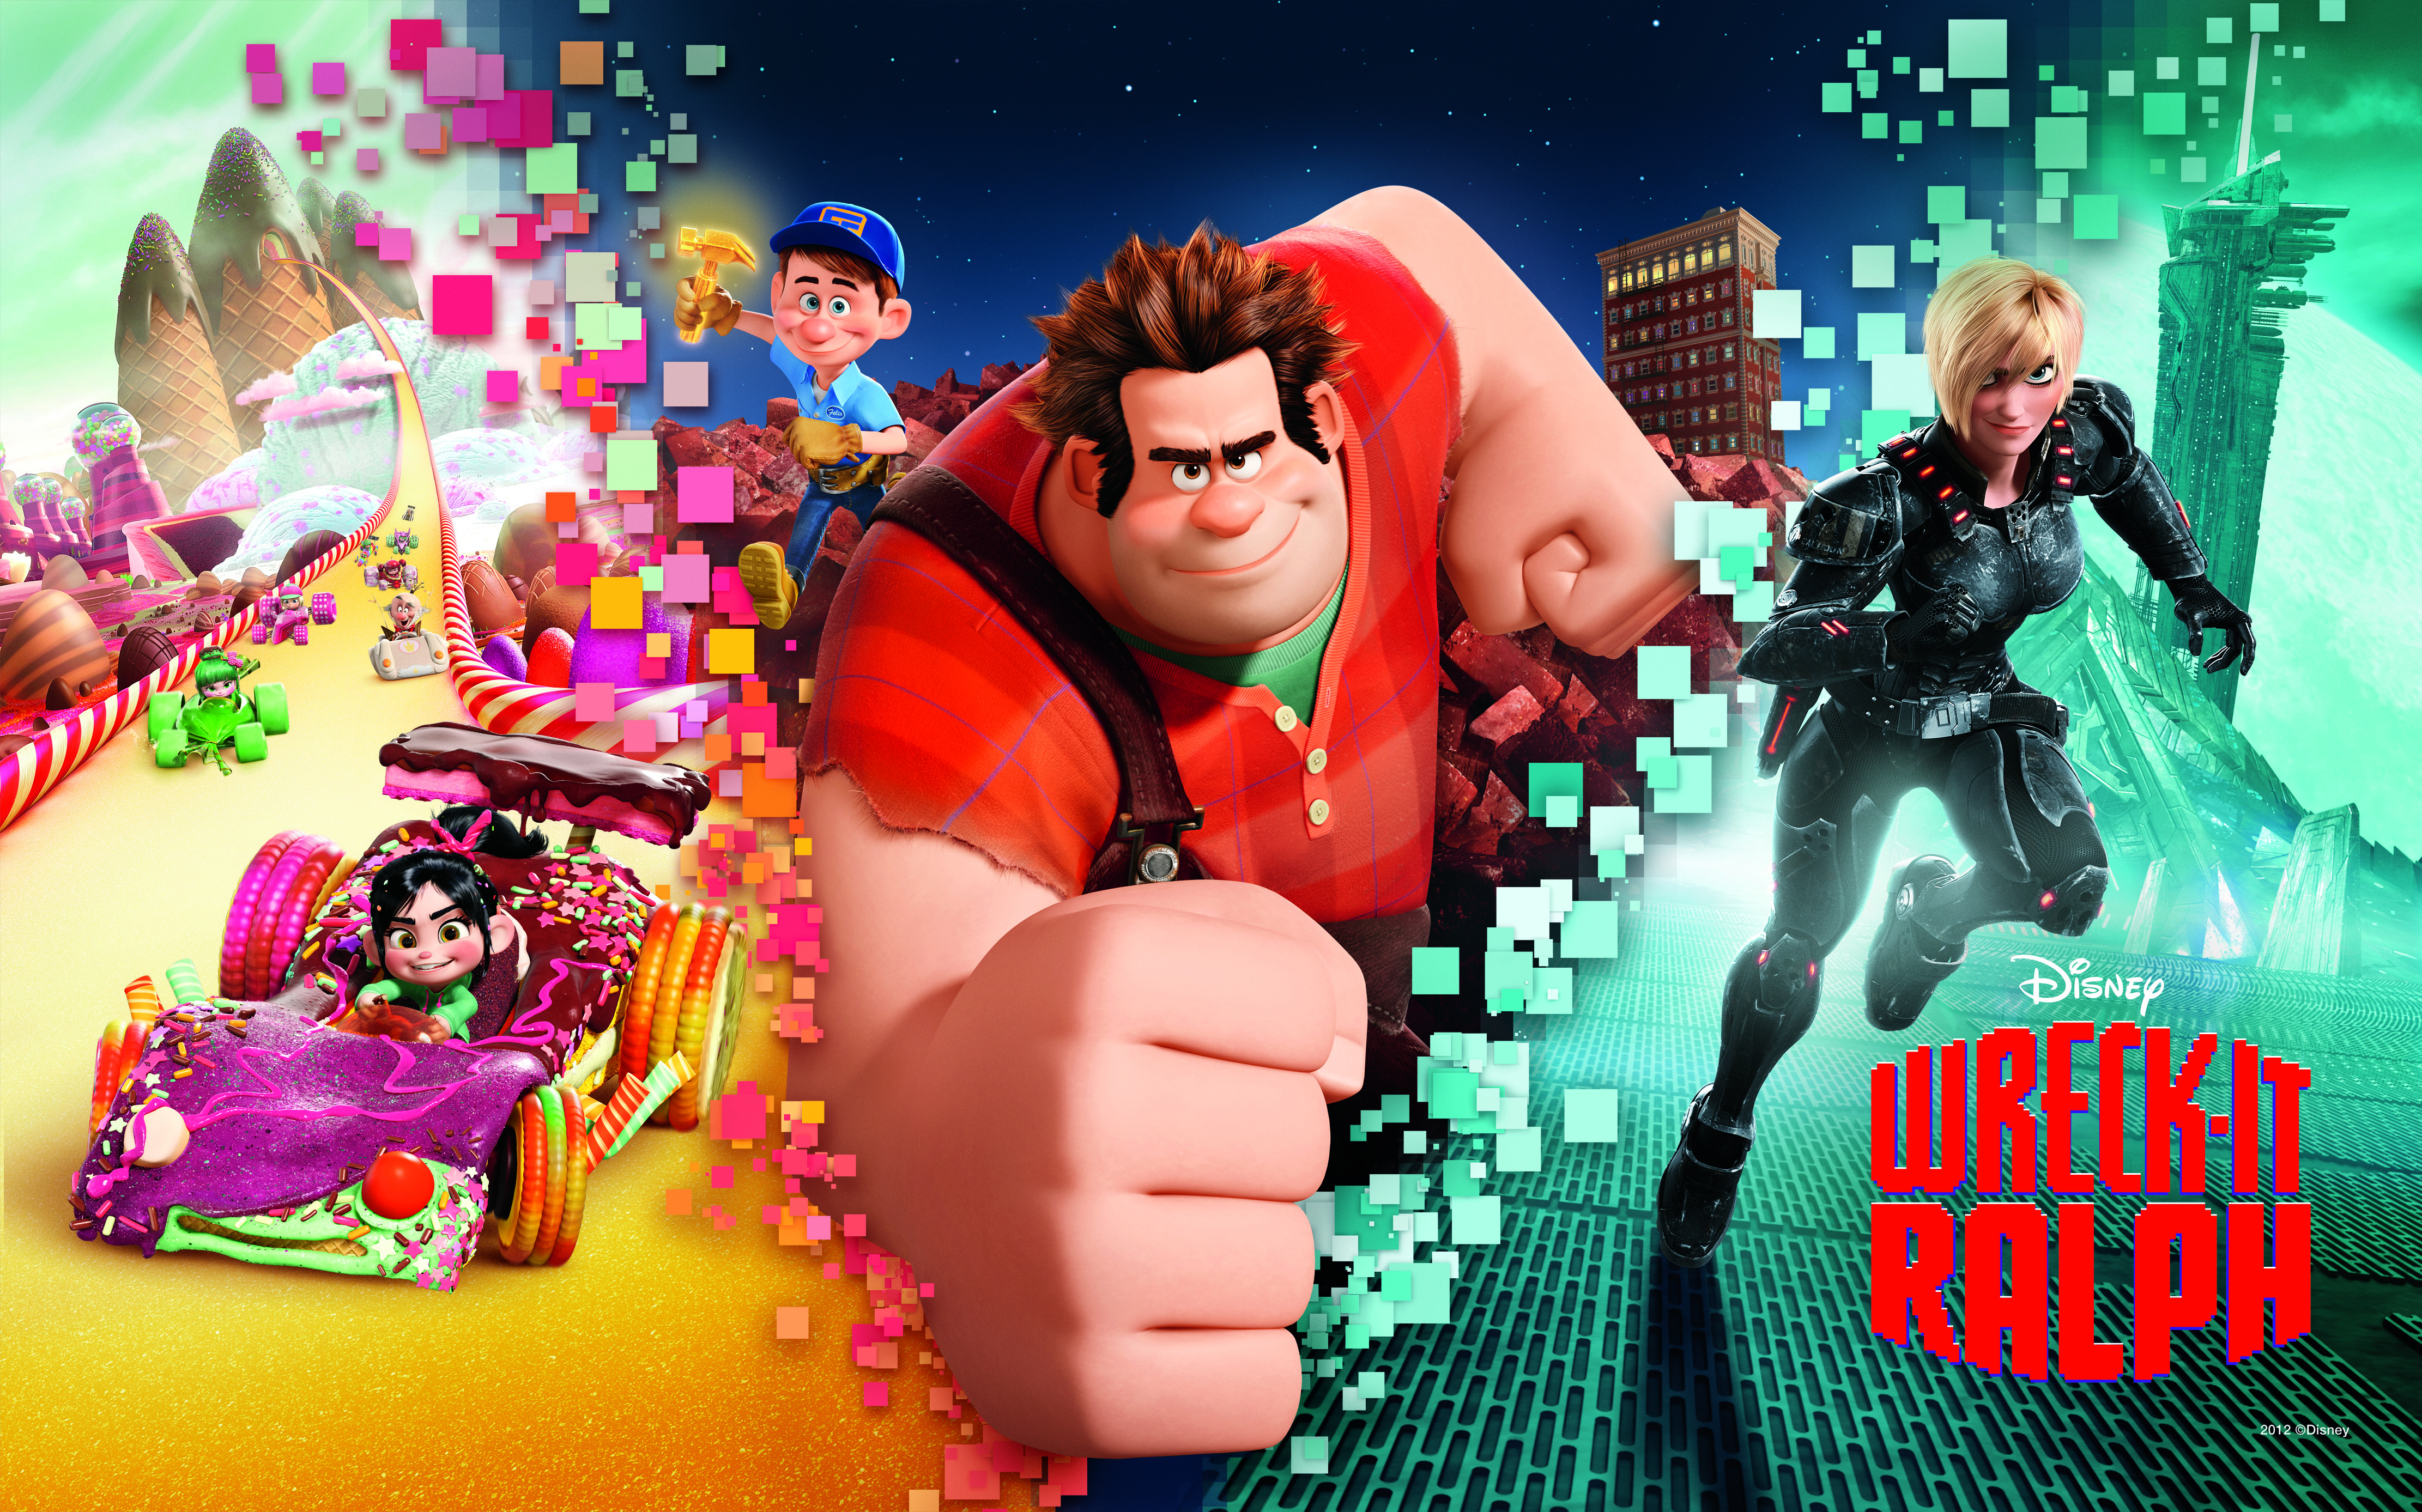 Wreck It Ralph Animation Movie 4k Hd Desktop Wallpaper For: Marquee Mama Reviews Disney's Wreck-It Ralph (Film Review